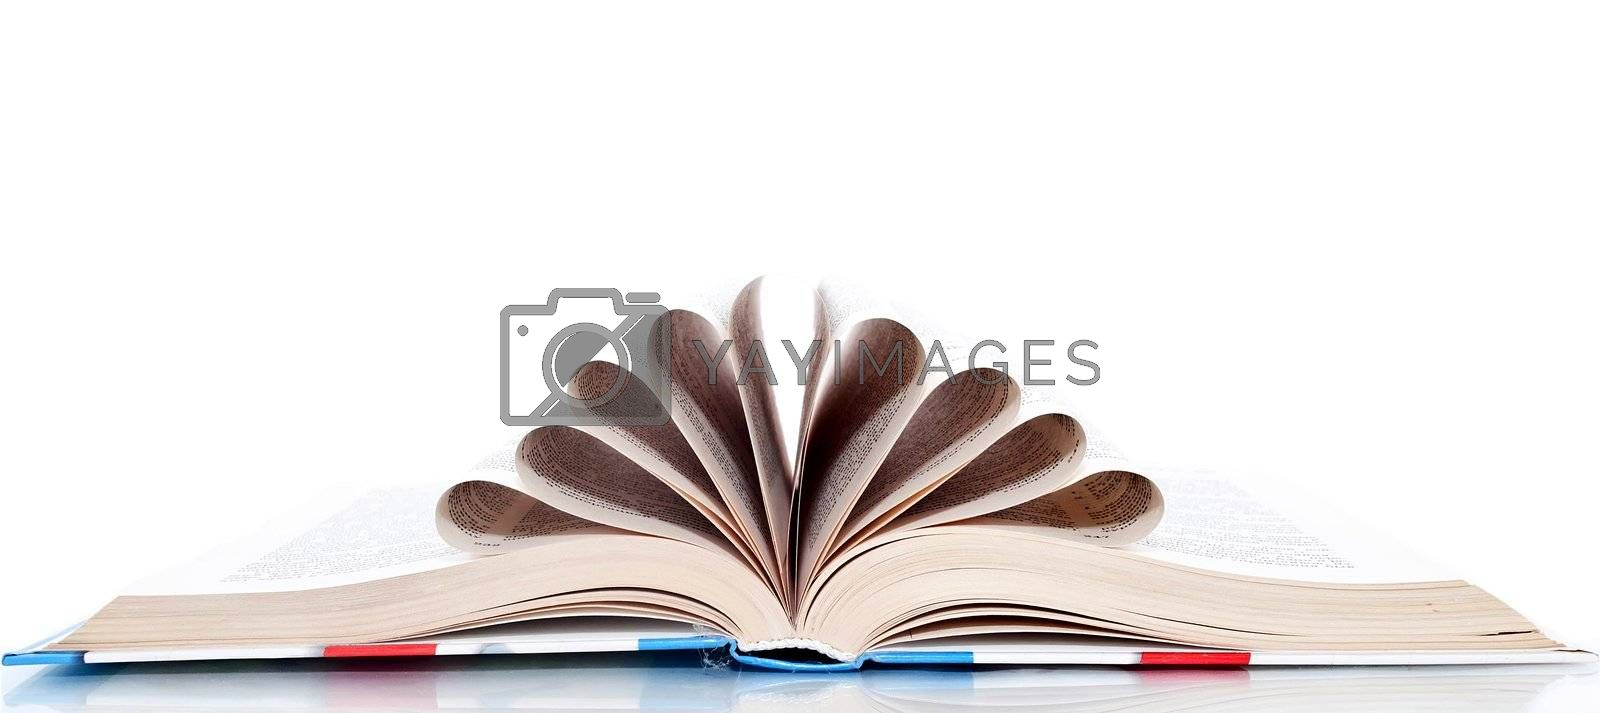 Book with the pages wrapped up in a tube, isolated on a white background